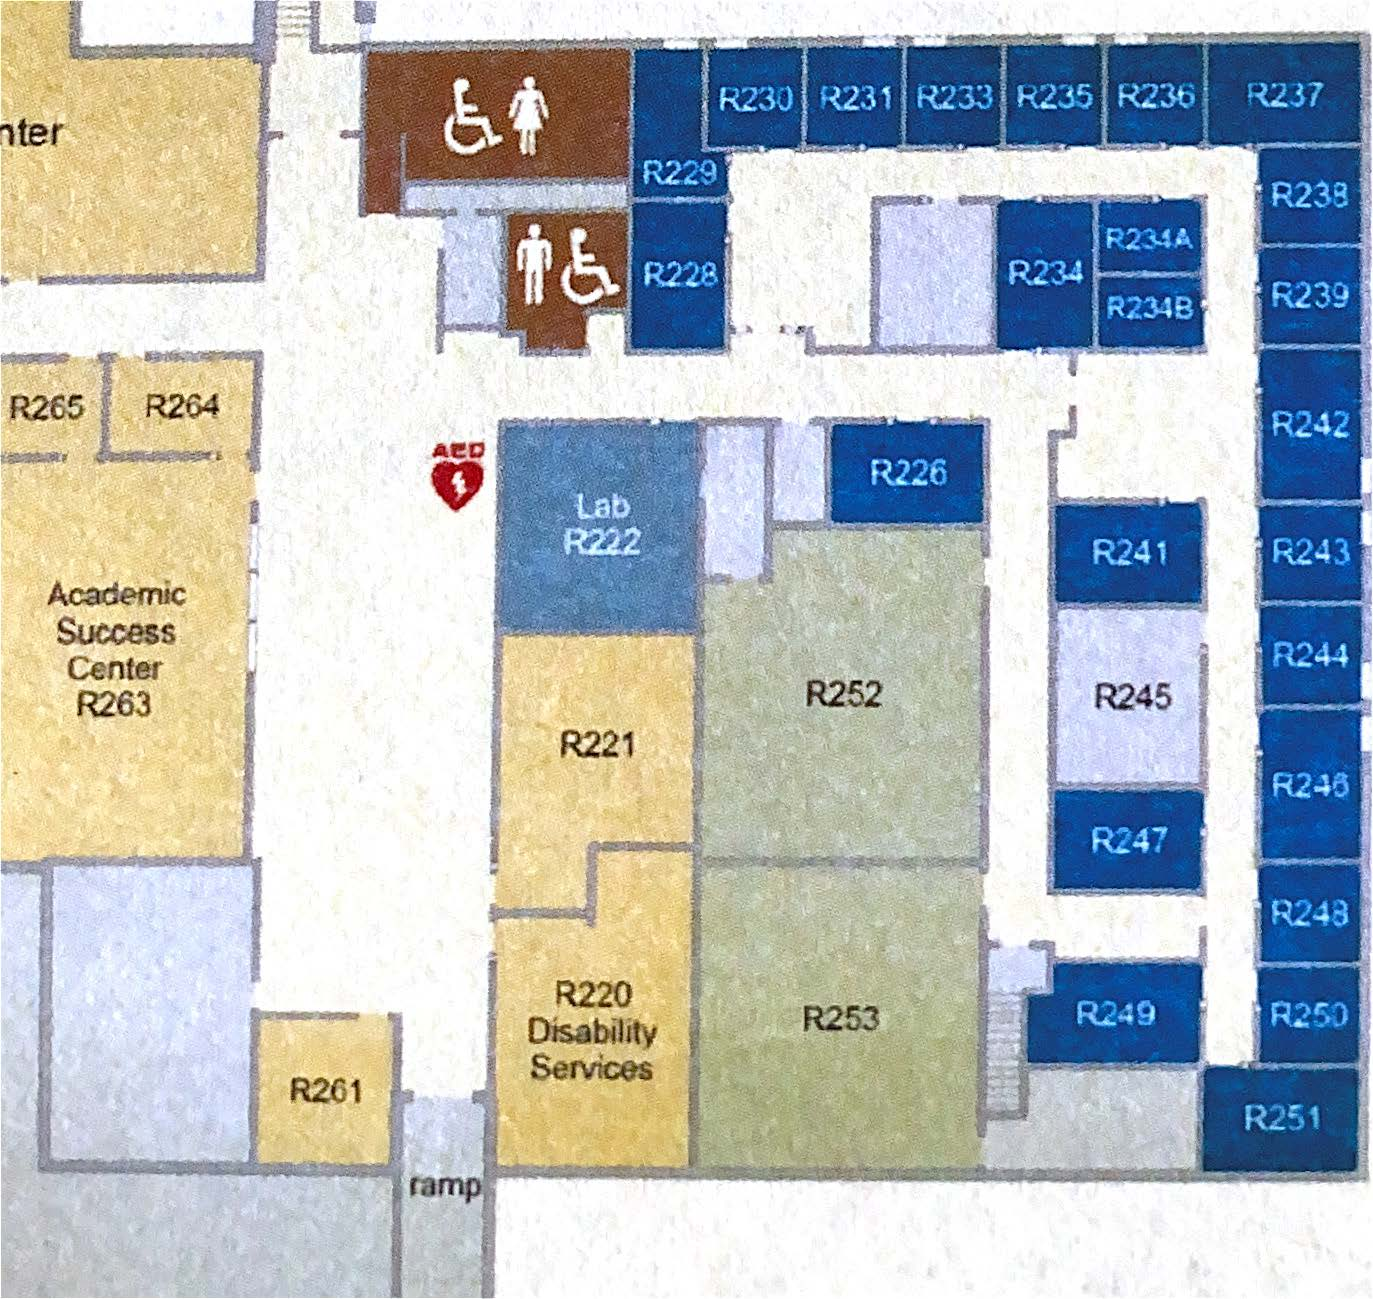 Disability Services Location Map